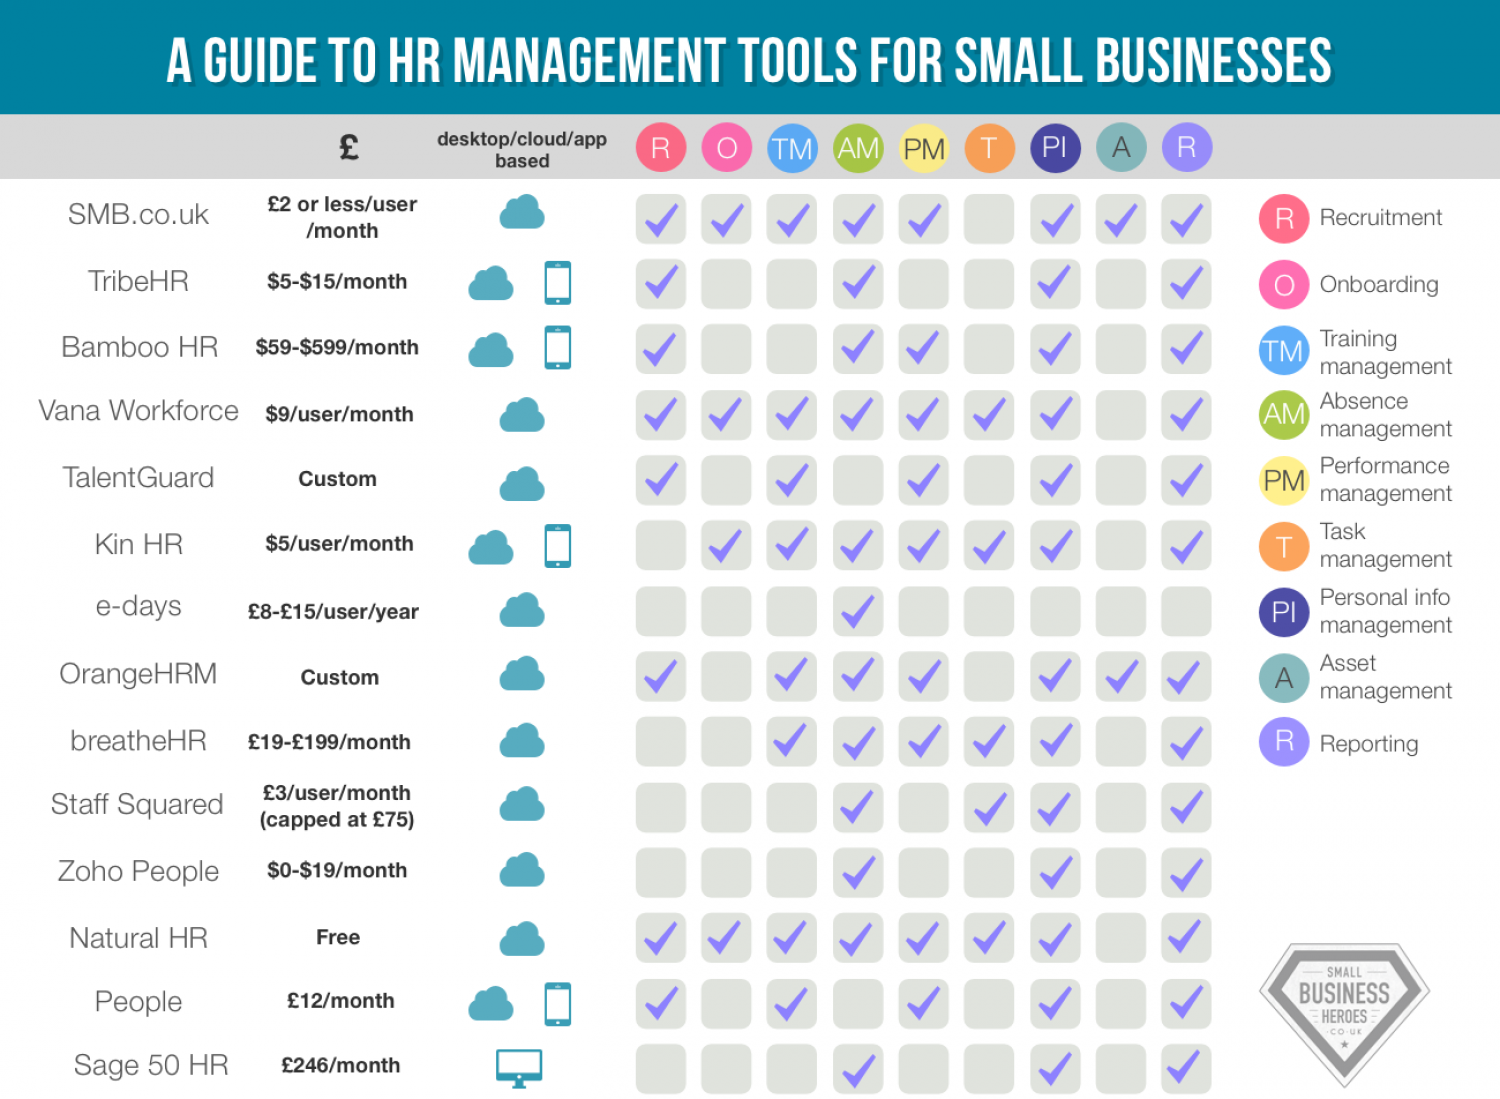 A guide to HR management tools for small businesses Infographic